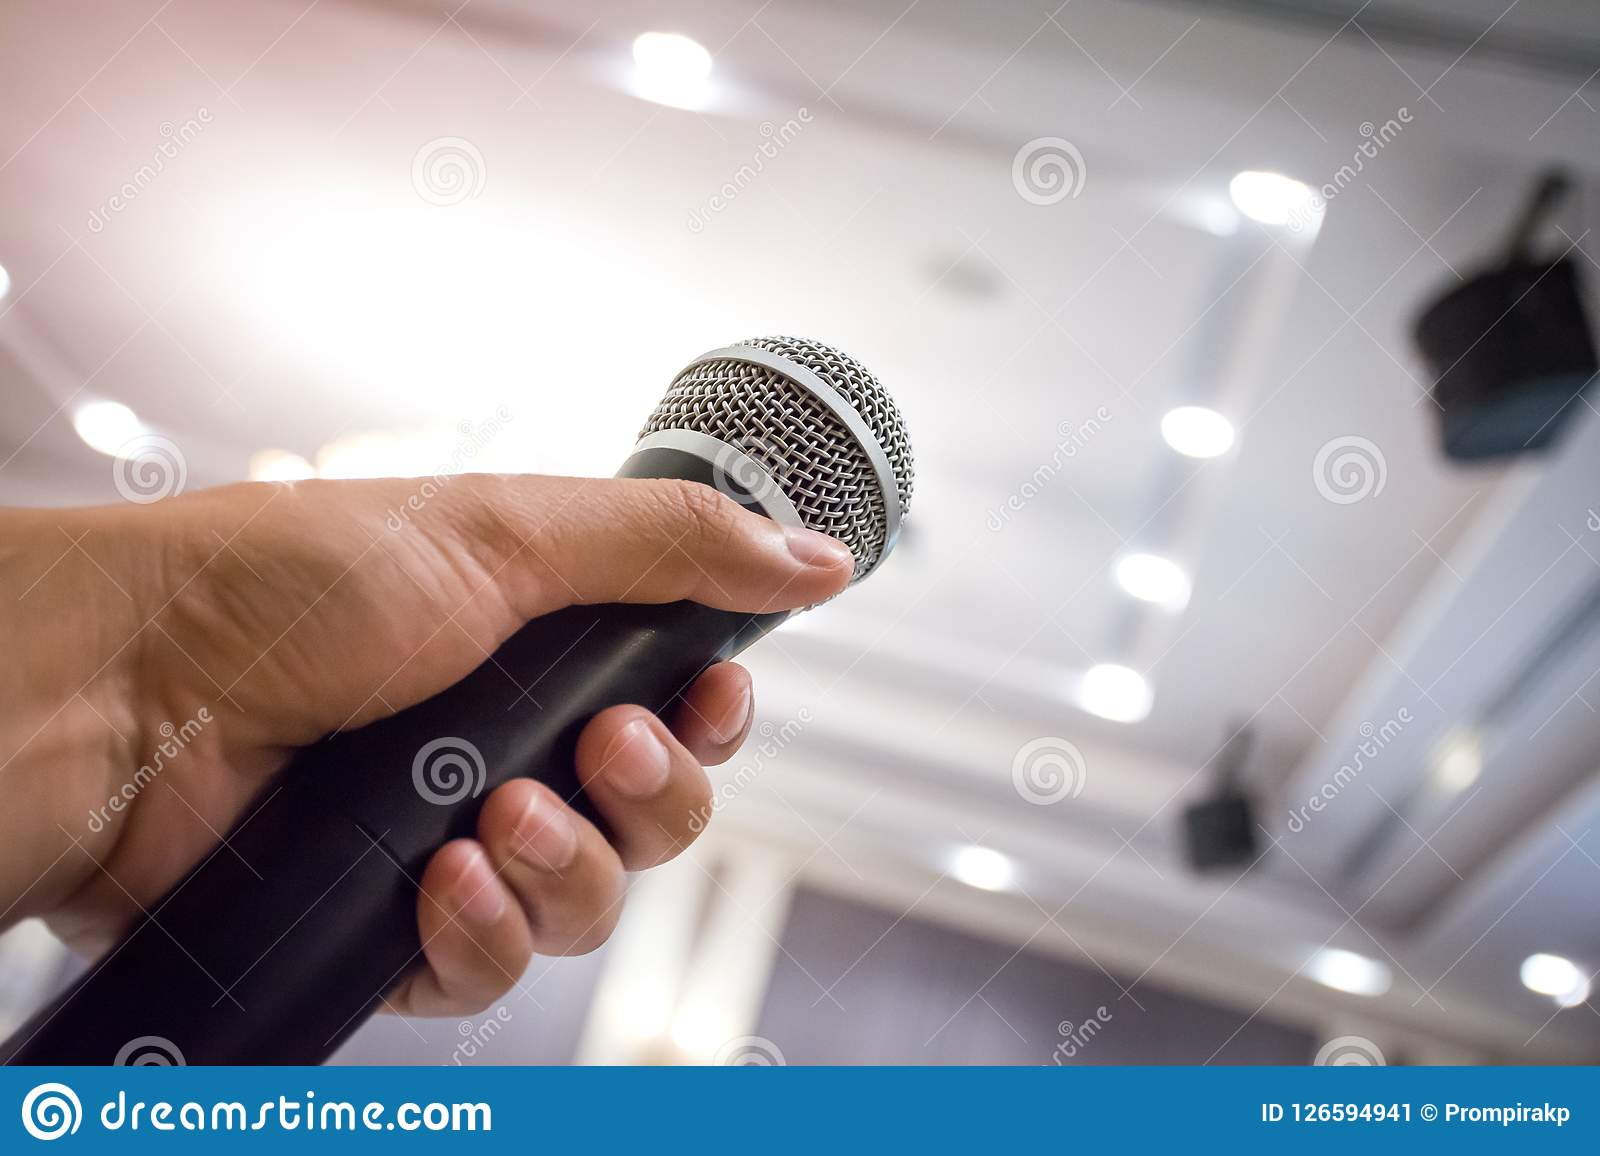 Close up of man`s hand holding microphone in conference hall or